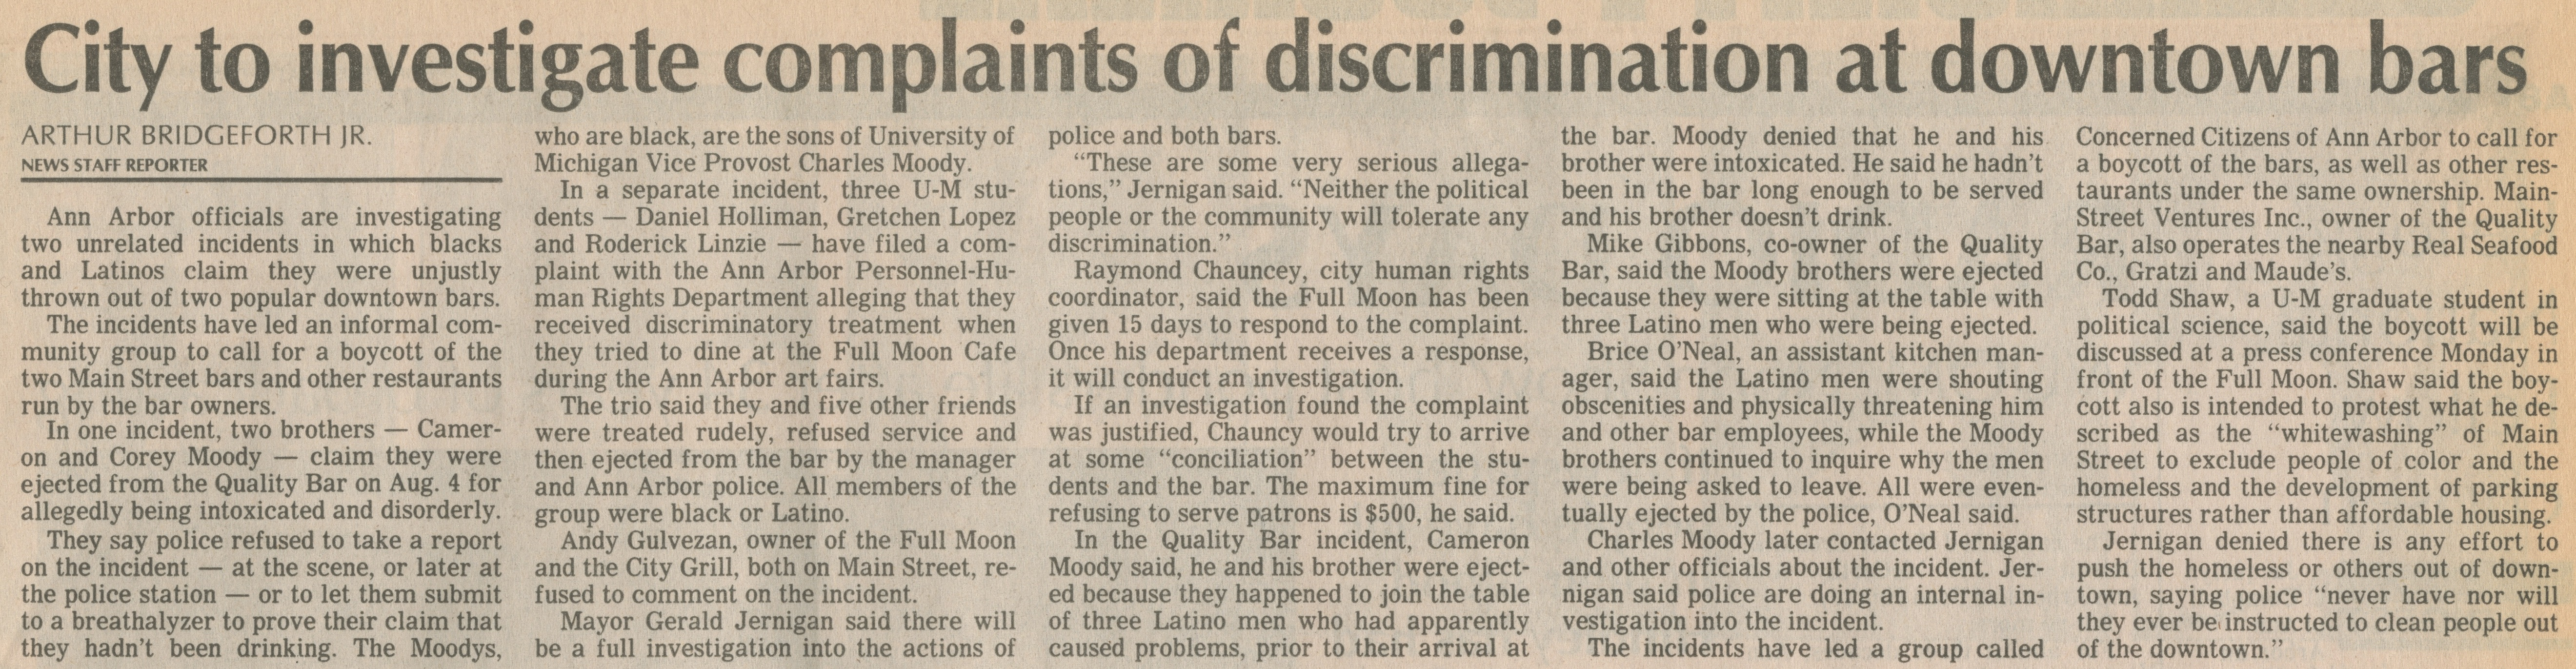 City To Investigate Complaints Of Discrimination At Downtown Bars image